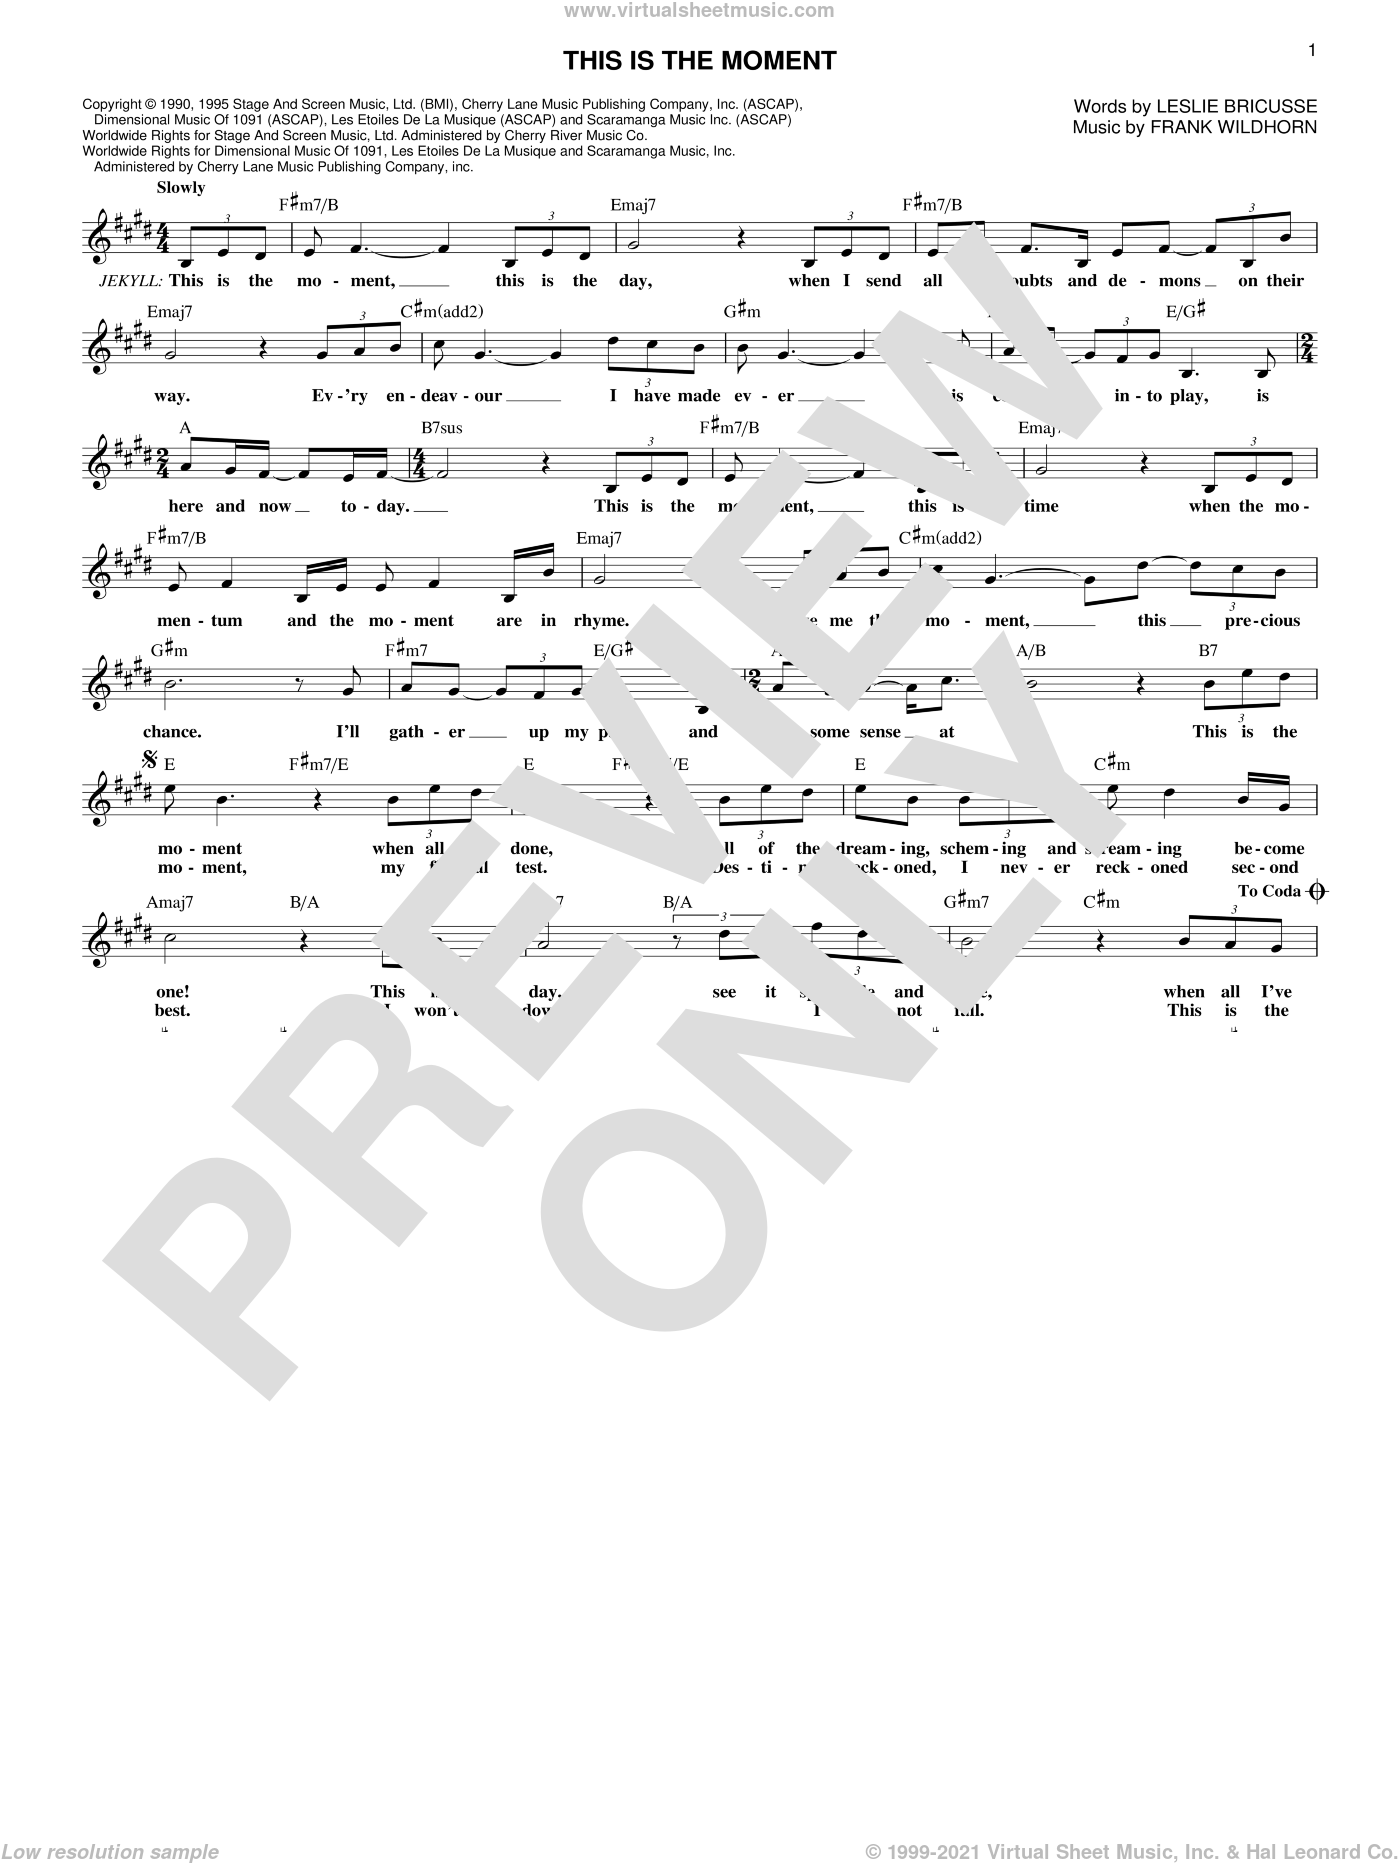 This Is The Moment sheet music for voice and other instruments (fake book) by Leslie Bricusse and Frank Wildhorn, intermediate skill level